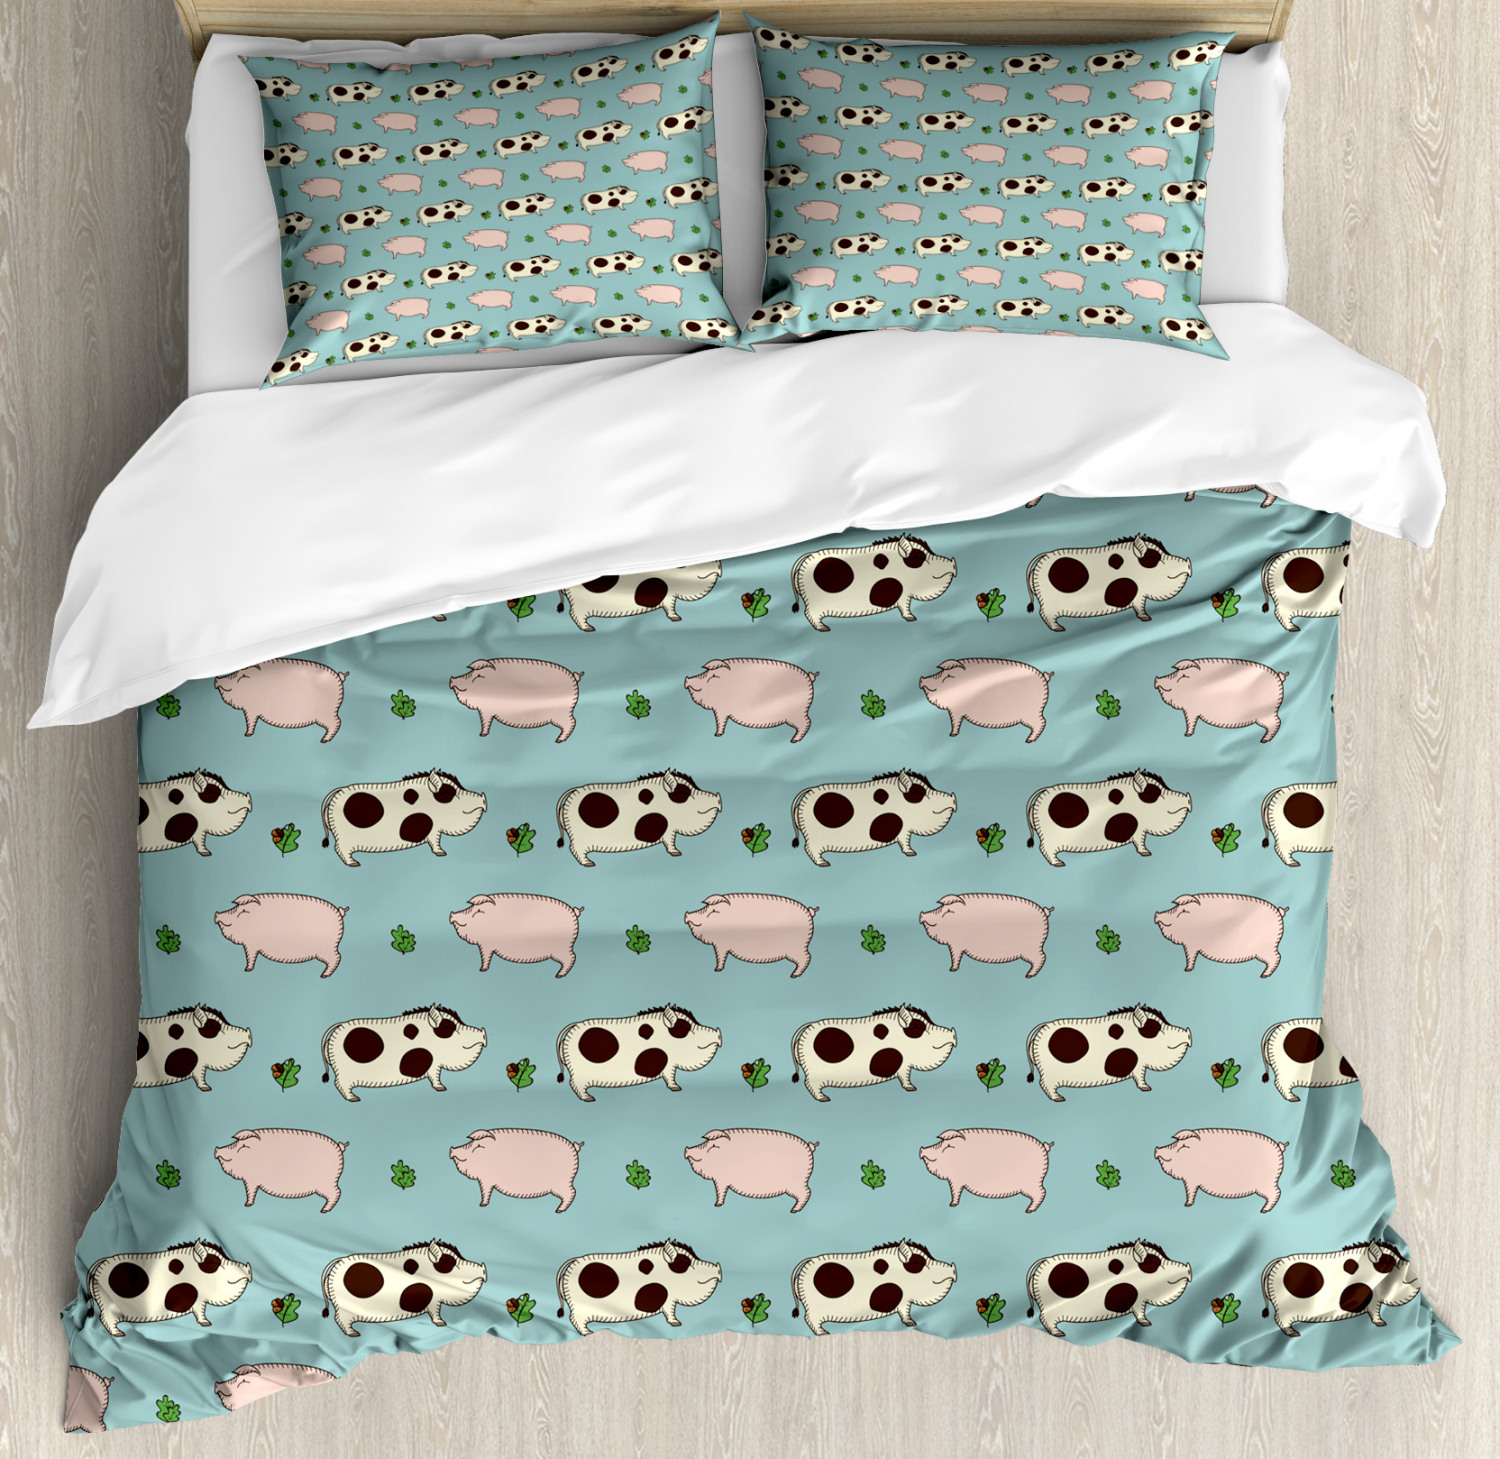 3 Sizes Bear and Hedgehog Friends Soft /& Cosy Brushed Cotton Duvet Cover Set